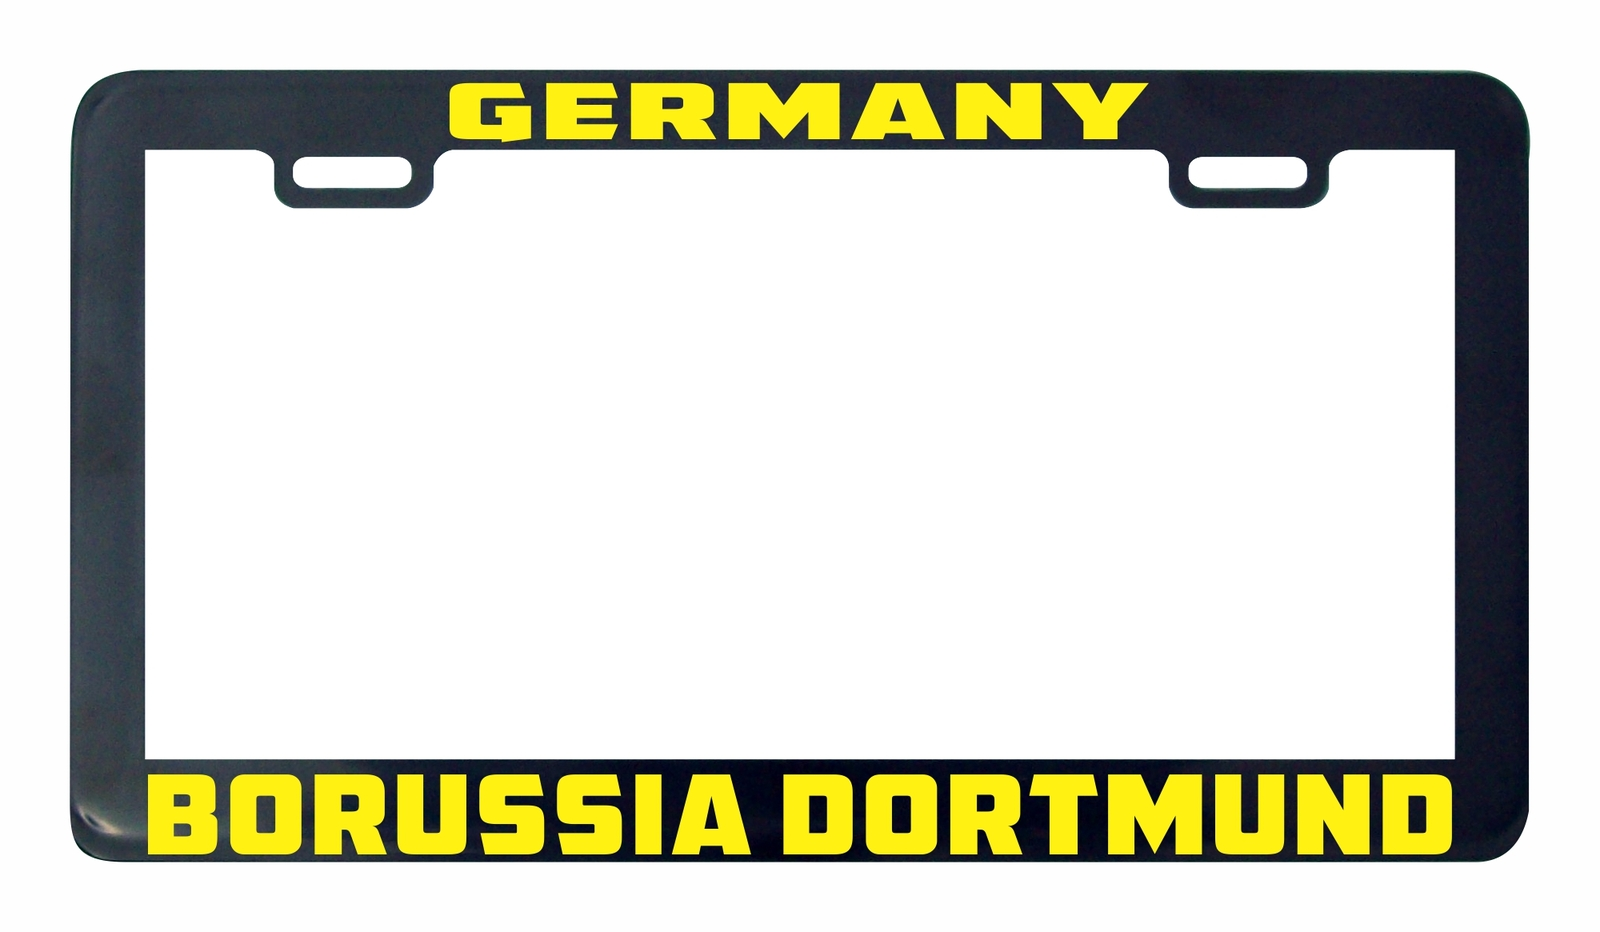 Primary image for Borussia Dortmund Germany futbol soccer license plate frame holder tag